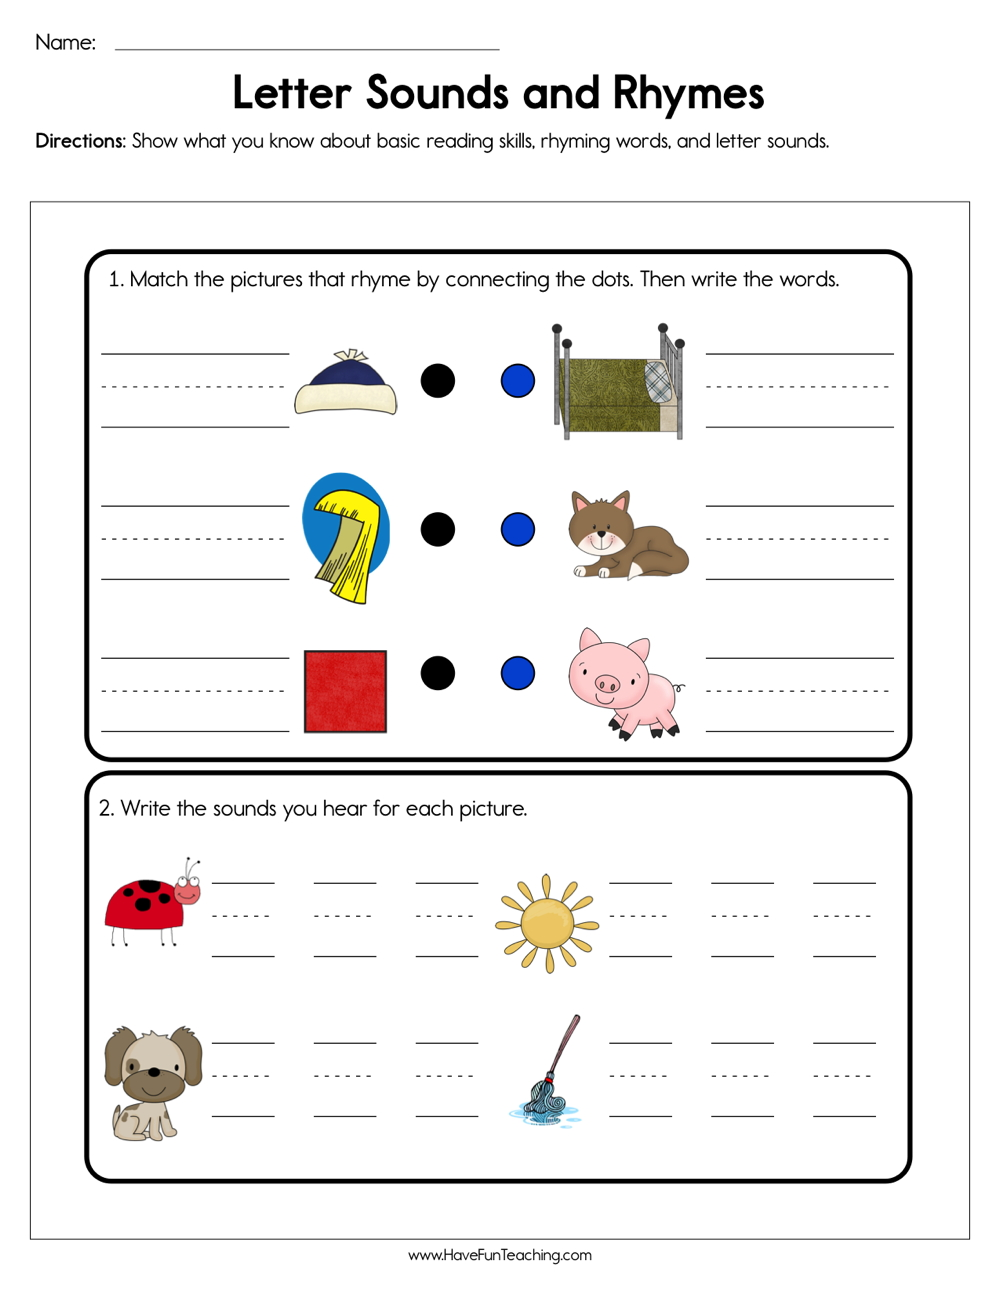 medium resolution of Letter Sounds and Rhymes Worksheet • Have Fun Teaching